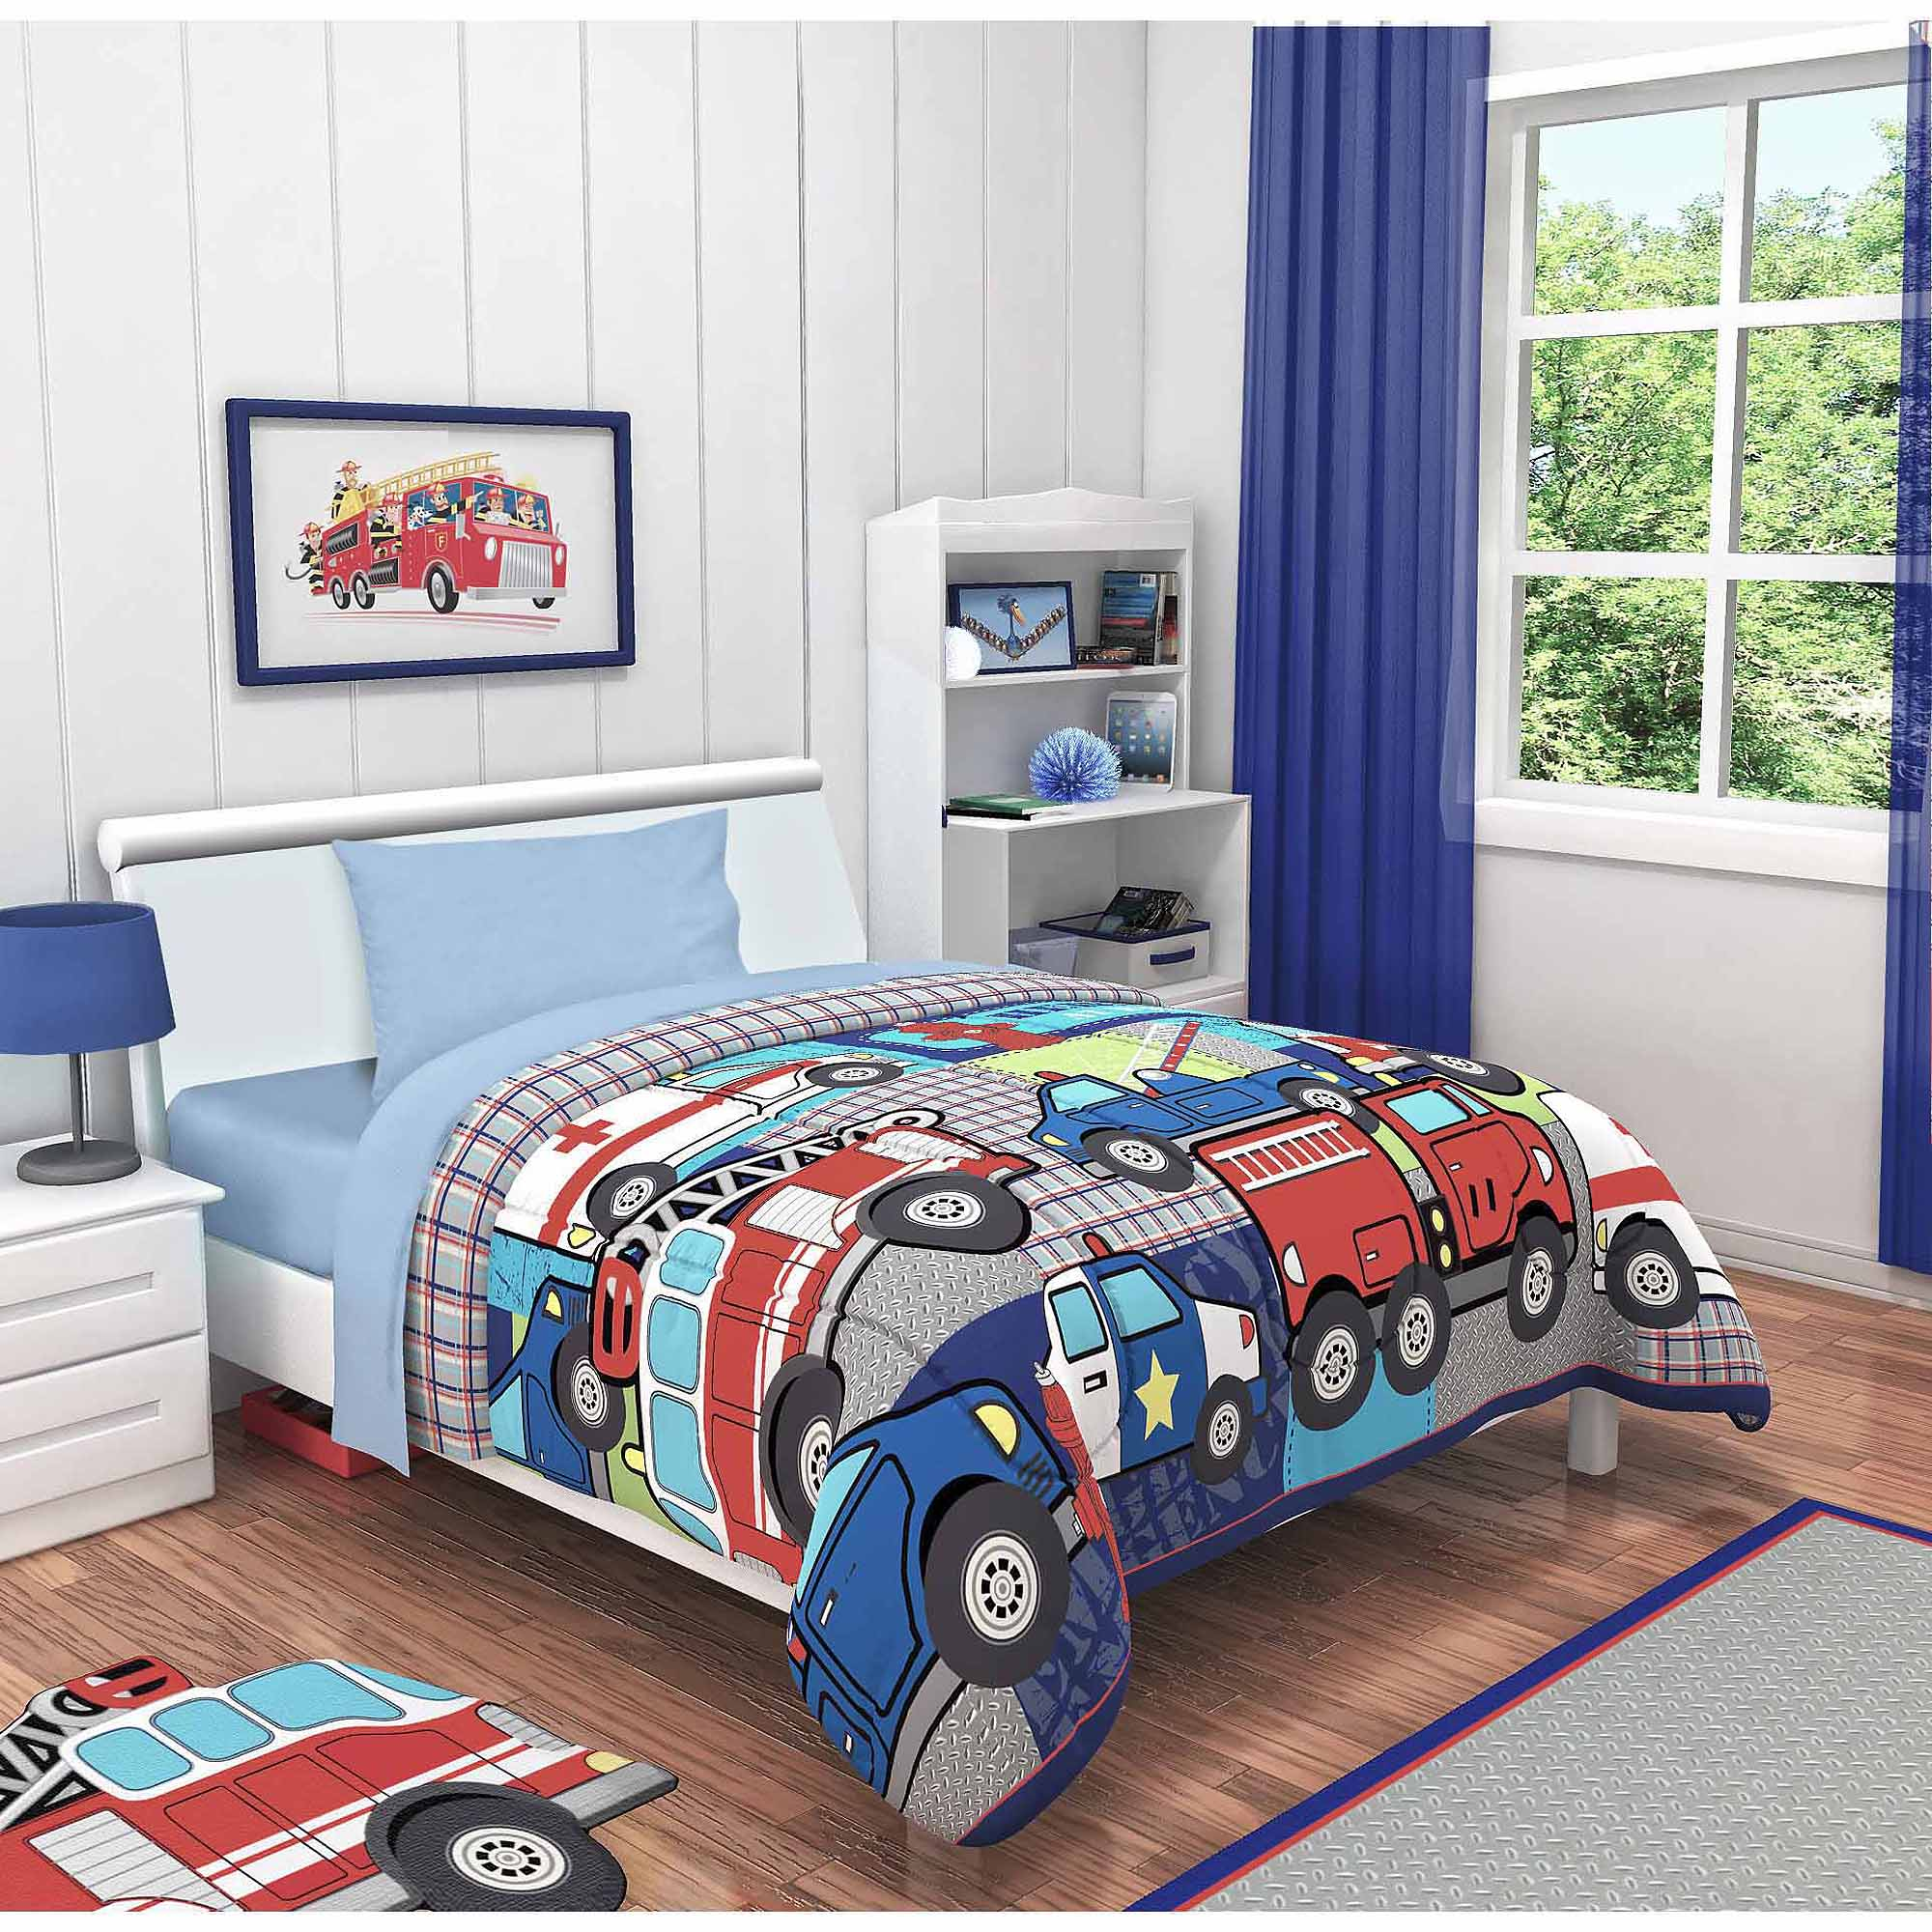 Thomas And Friends 4 Piece Toddler Bedding Set   Walmart.com